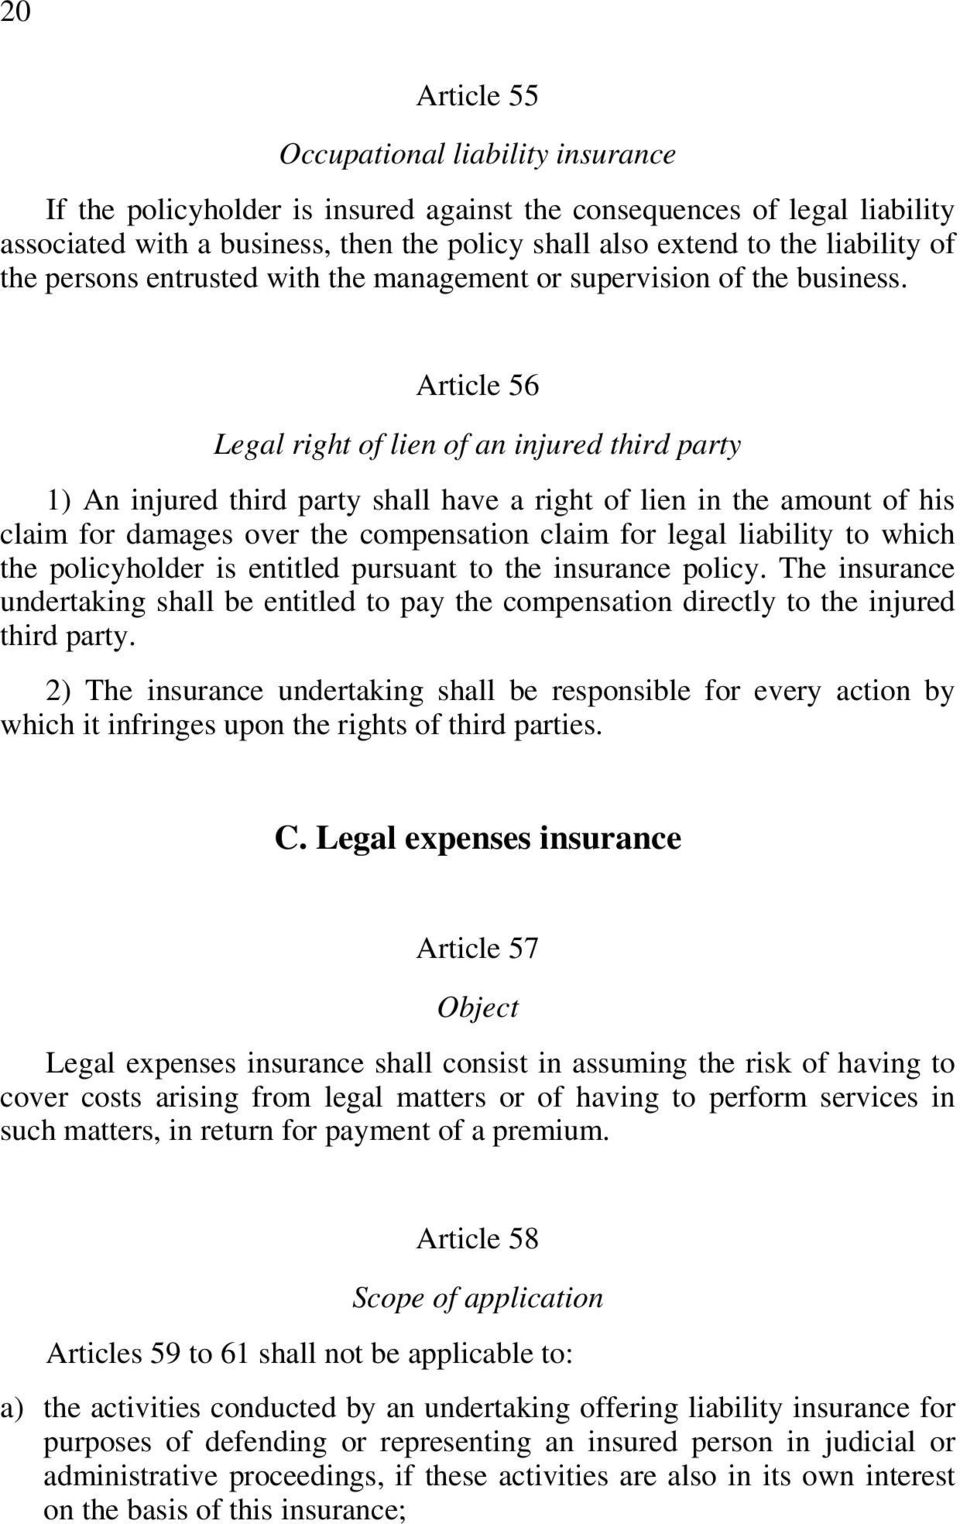 Article 56 Legal right of lien of an injured third party 1) An injured third party shall have a right of lien in the amount of his claim for damages over the compensation claim for legal liability to